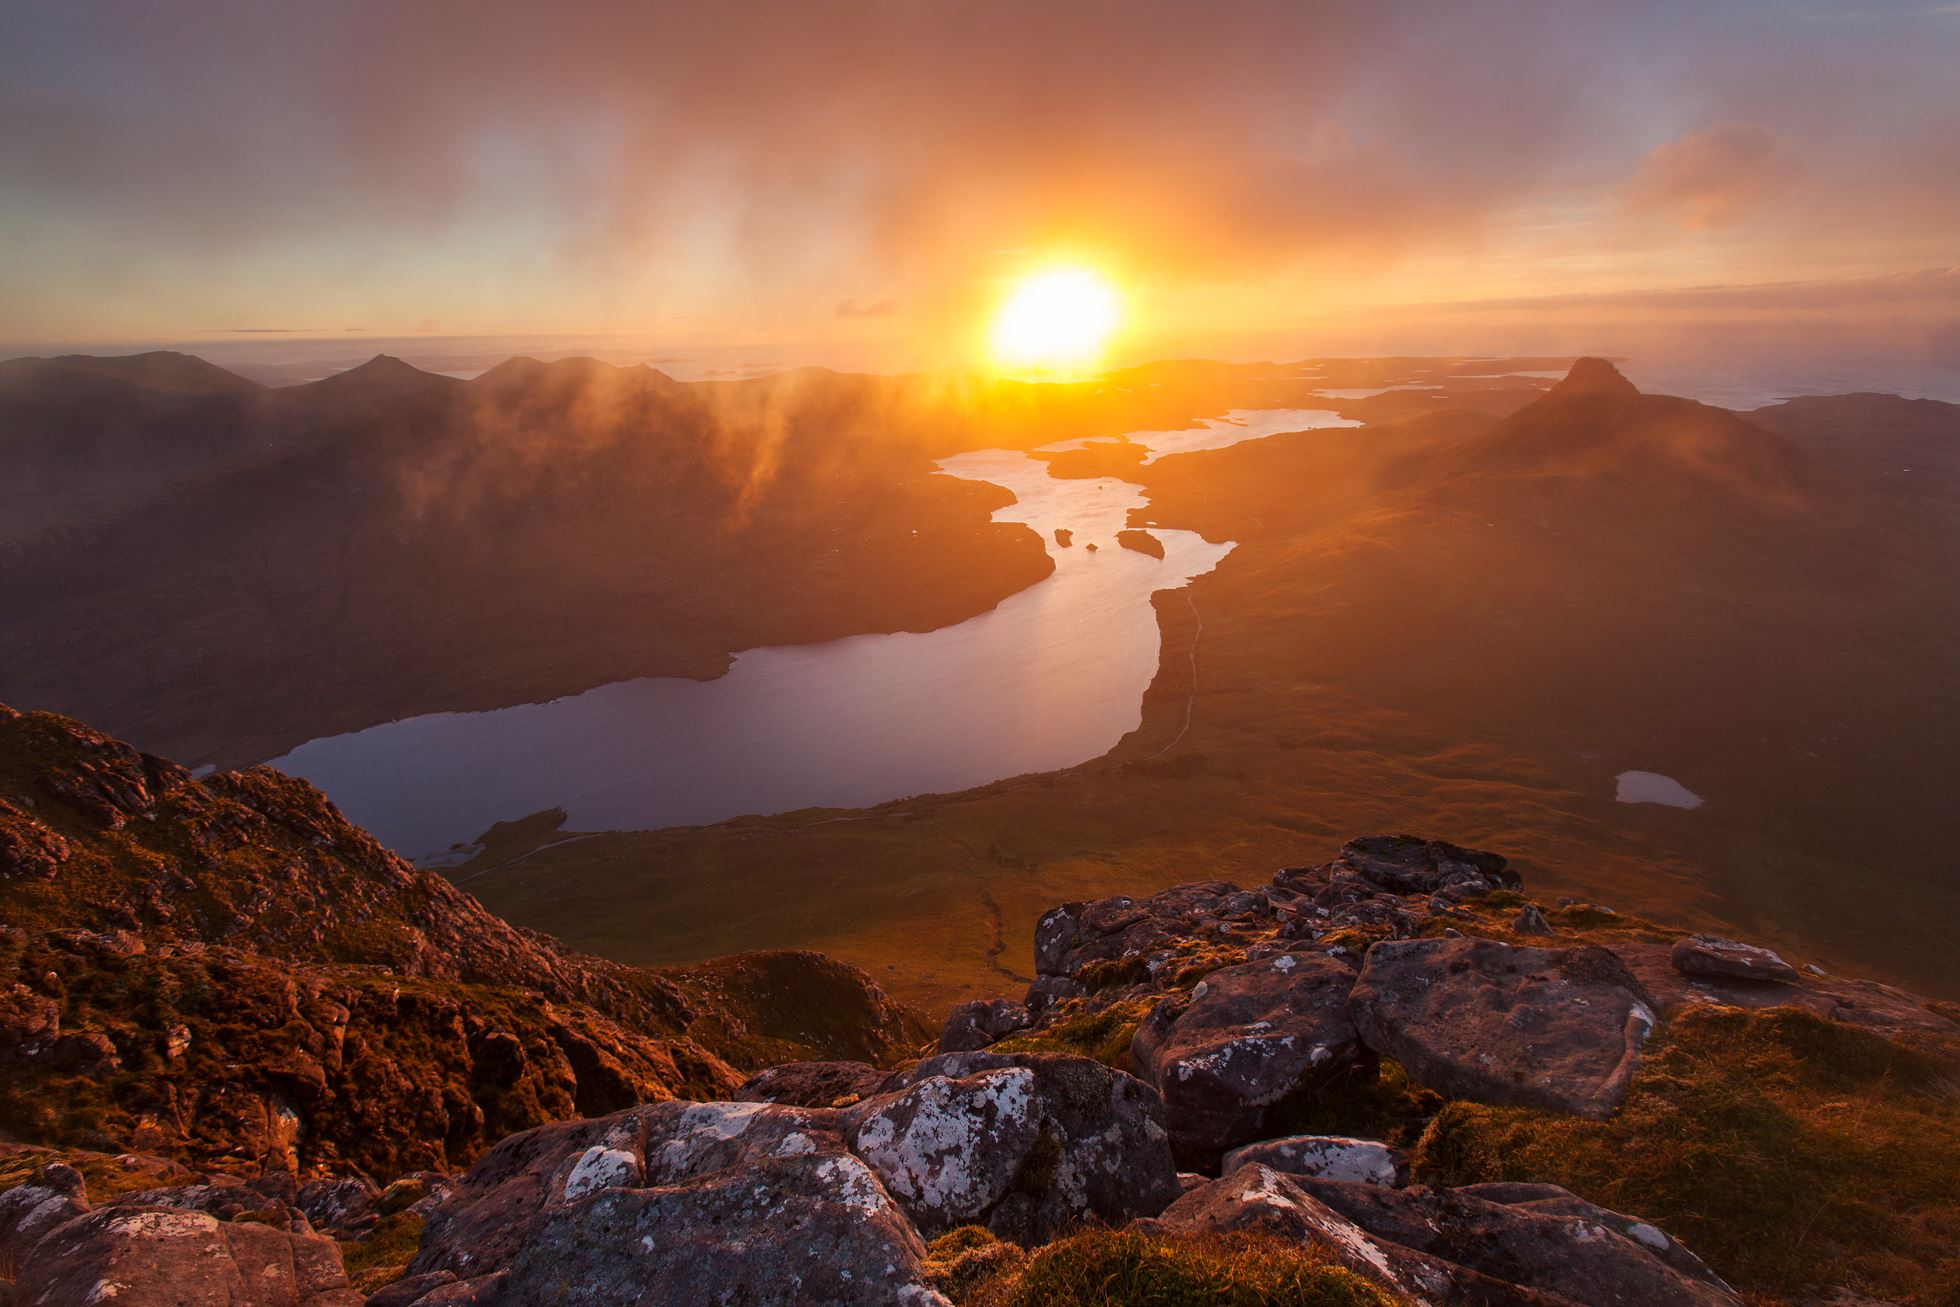 Loch Lurgainn and Stac Pollaidh at sunset, Assynt, Scotland